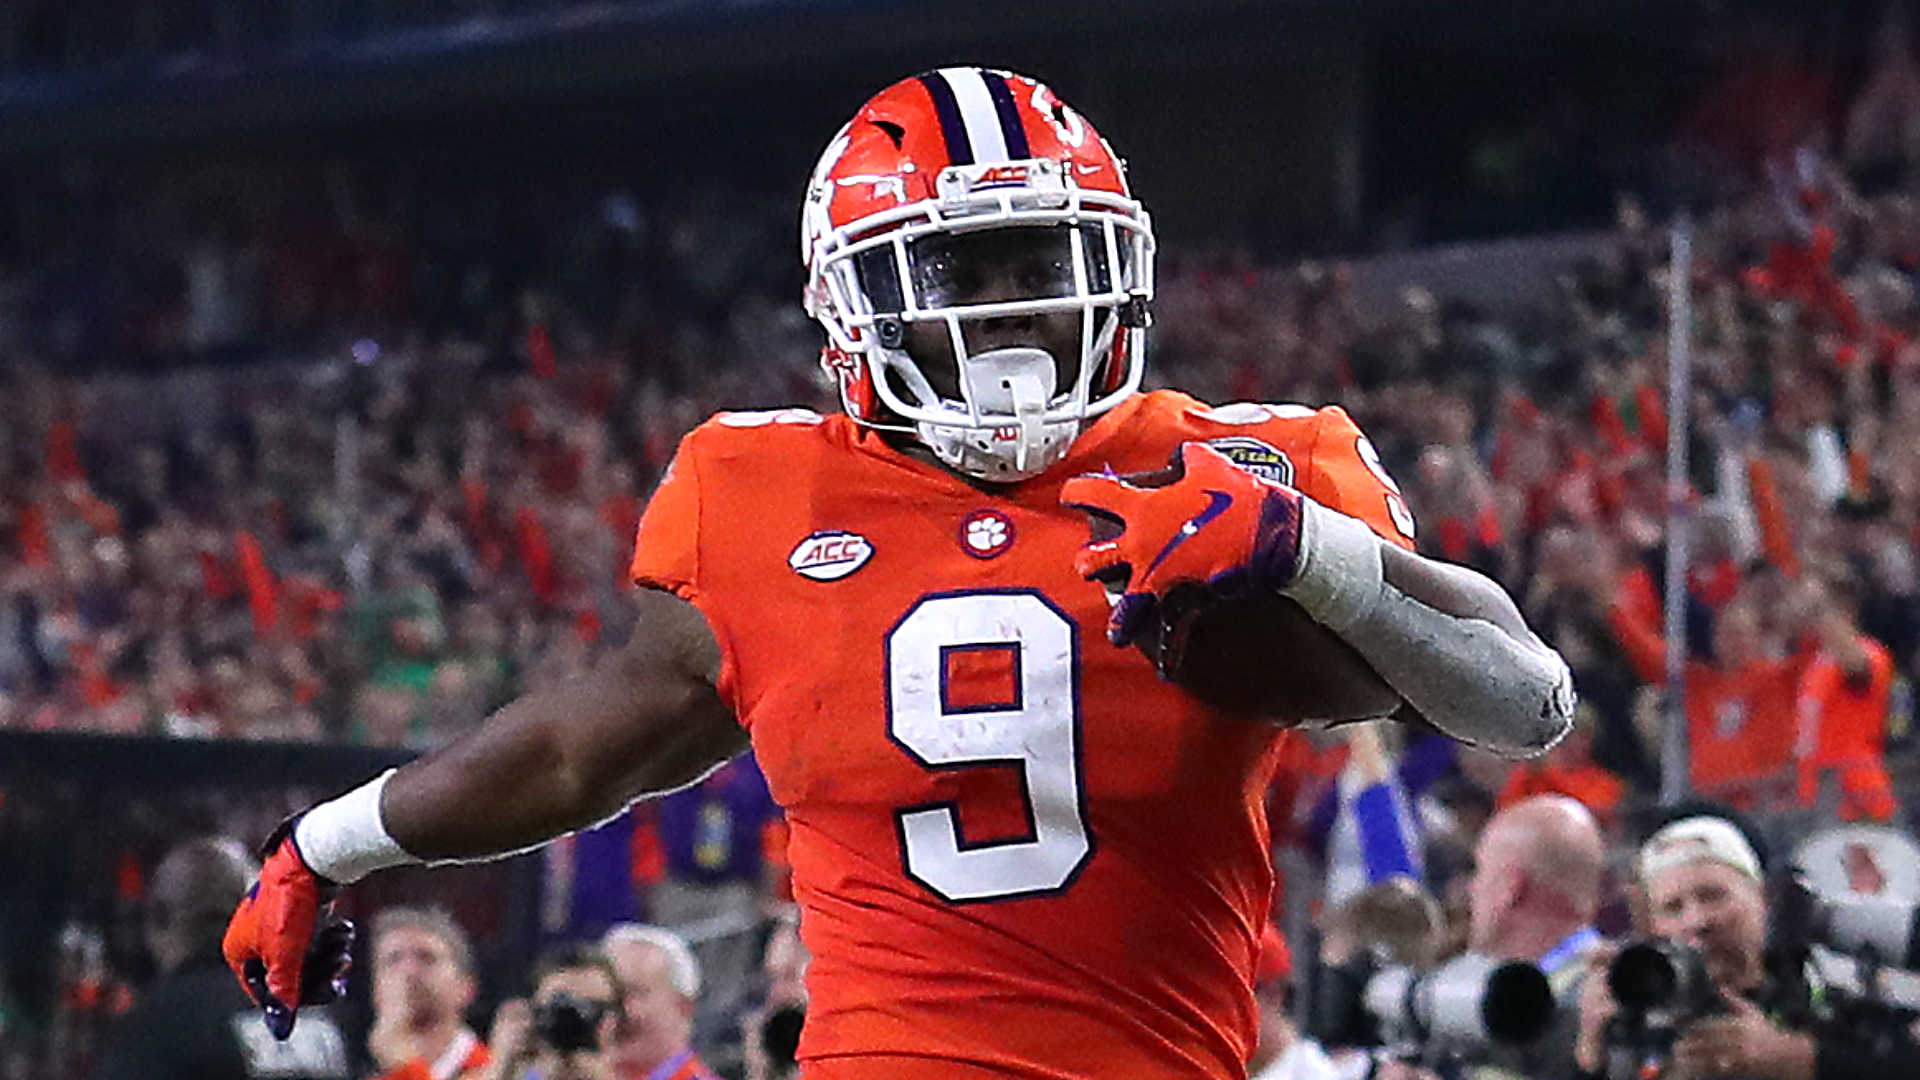 NFL draft prospects 2021: Big board of top 50 players overall & updated position rankings 3